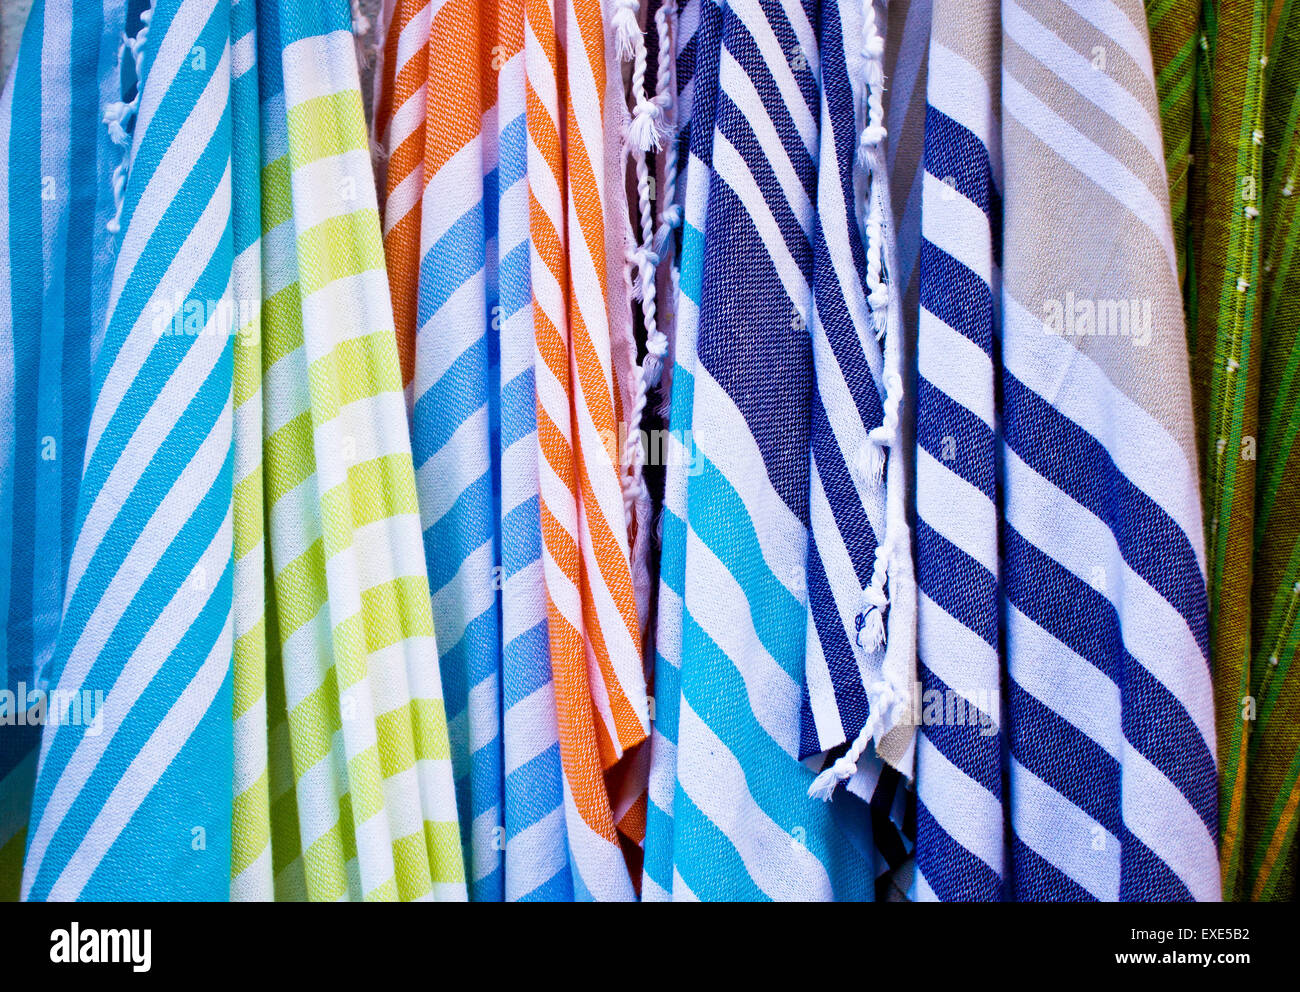 Colorful striped textiles as a background image Stock Photo